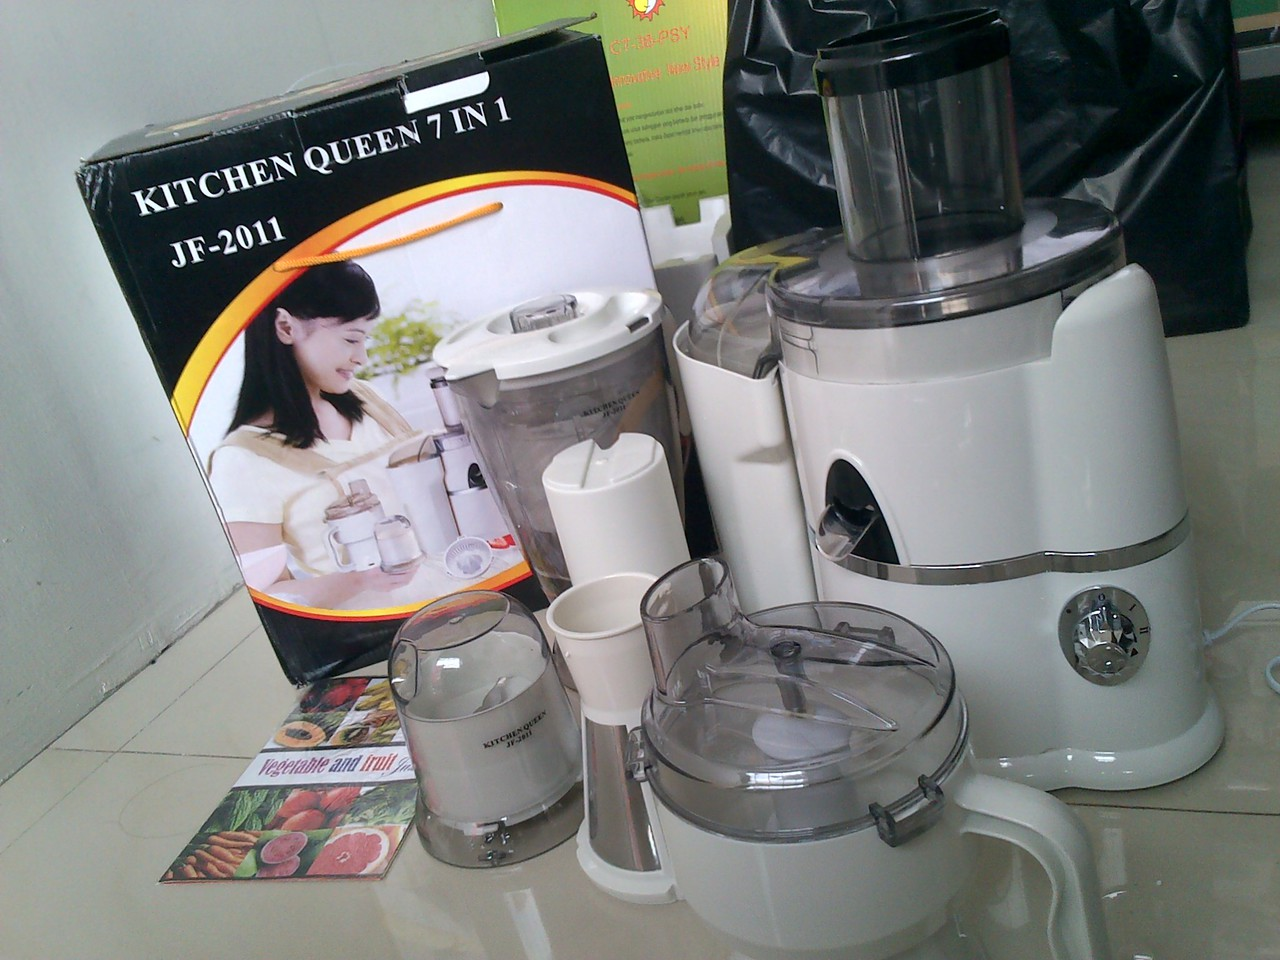 Kitchen Queen Cooker Power Juicer 7 in 1 Blender Makanan Bayi Moegen Germany Alat Buat Susu ...